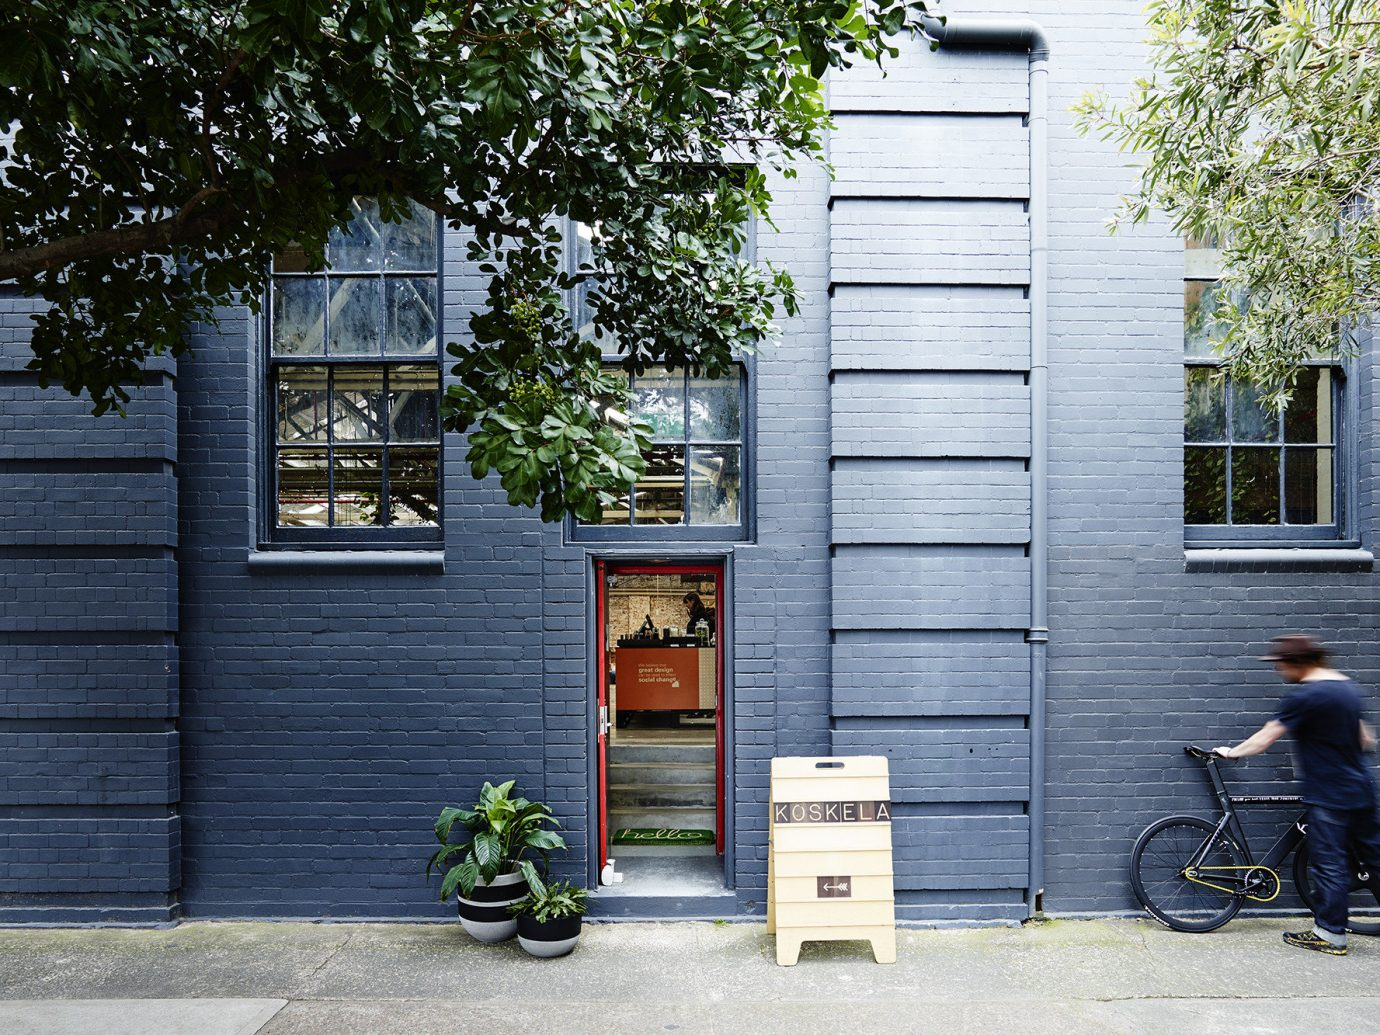 Trip Ideas outdoor tree house urban area neighbourhood road home wall Architecture street residential area facade door wood cottage scooter